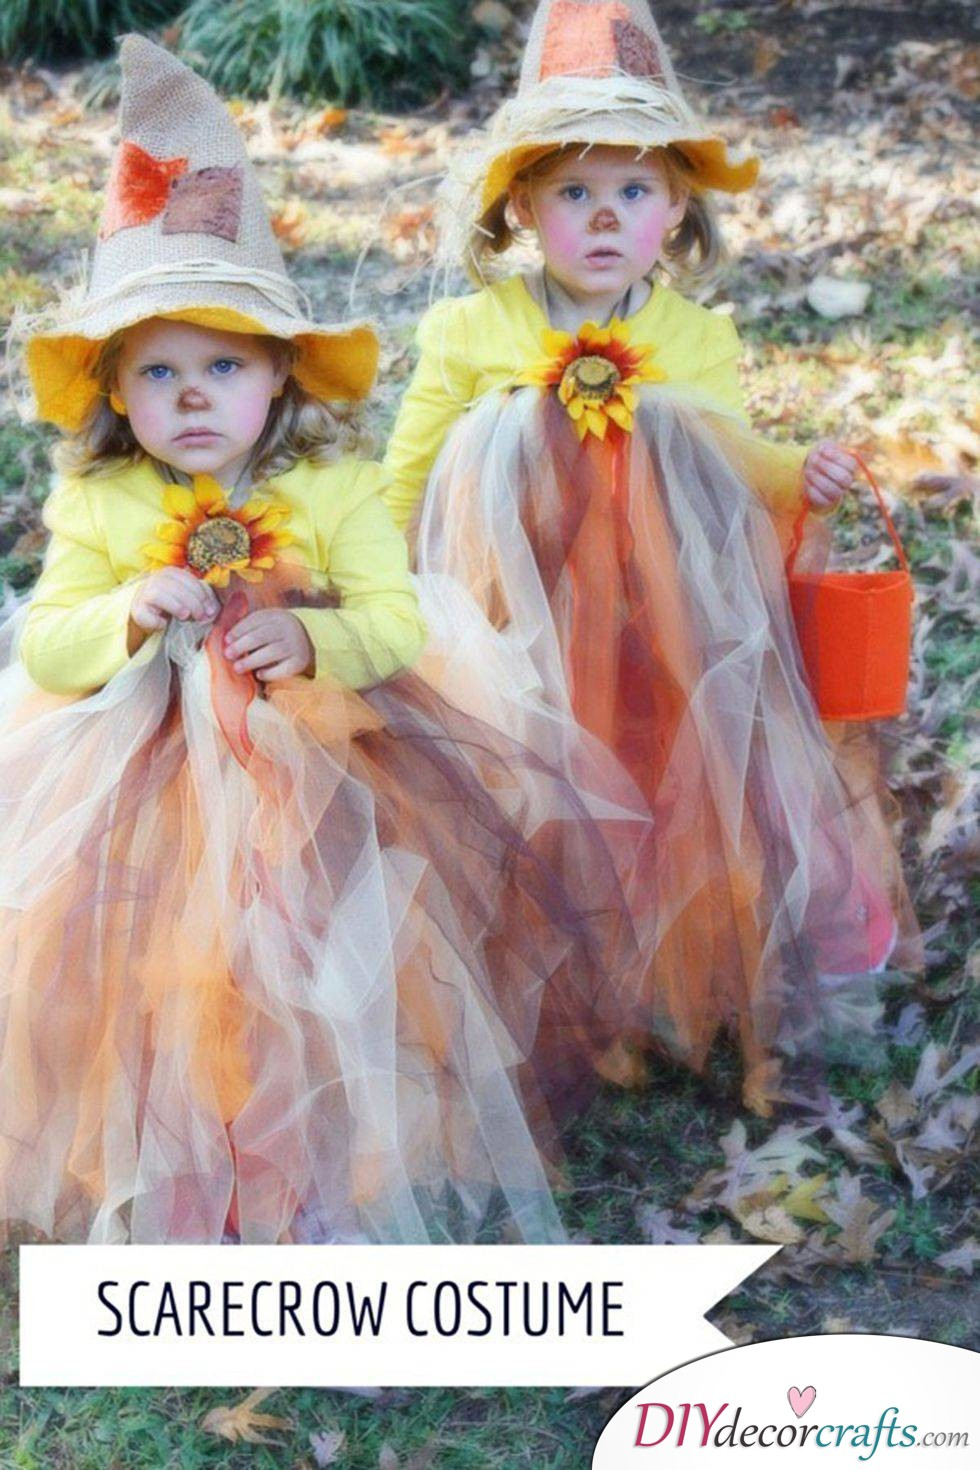 The Best DIY Halloween Costume Ideas For Kids, Scarecrow